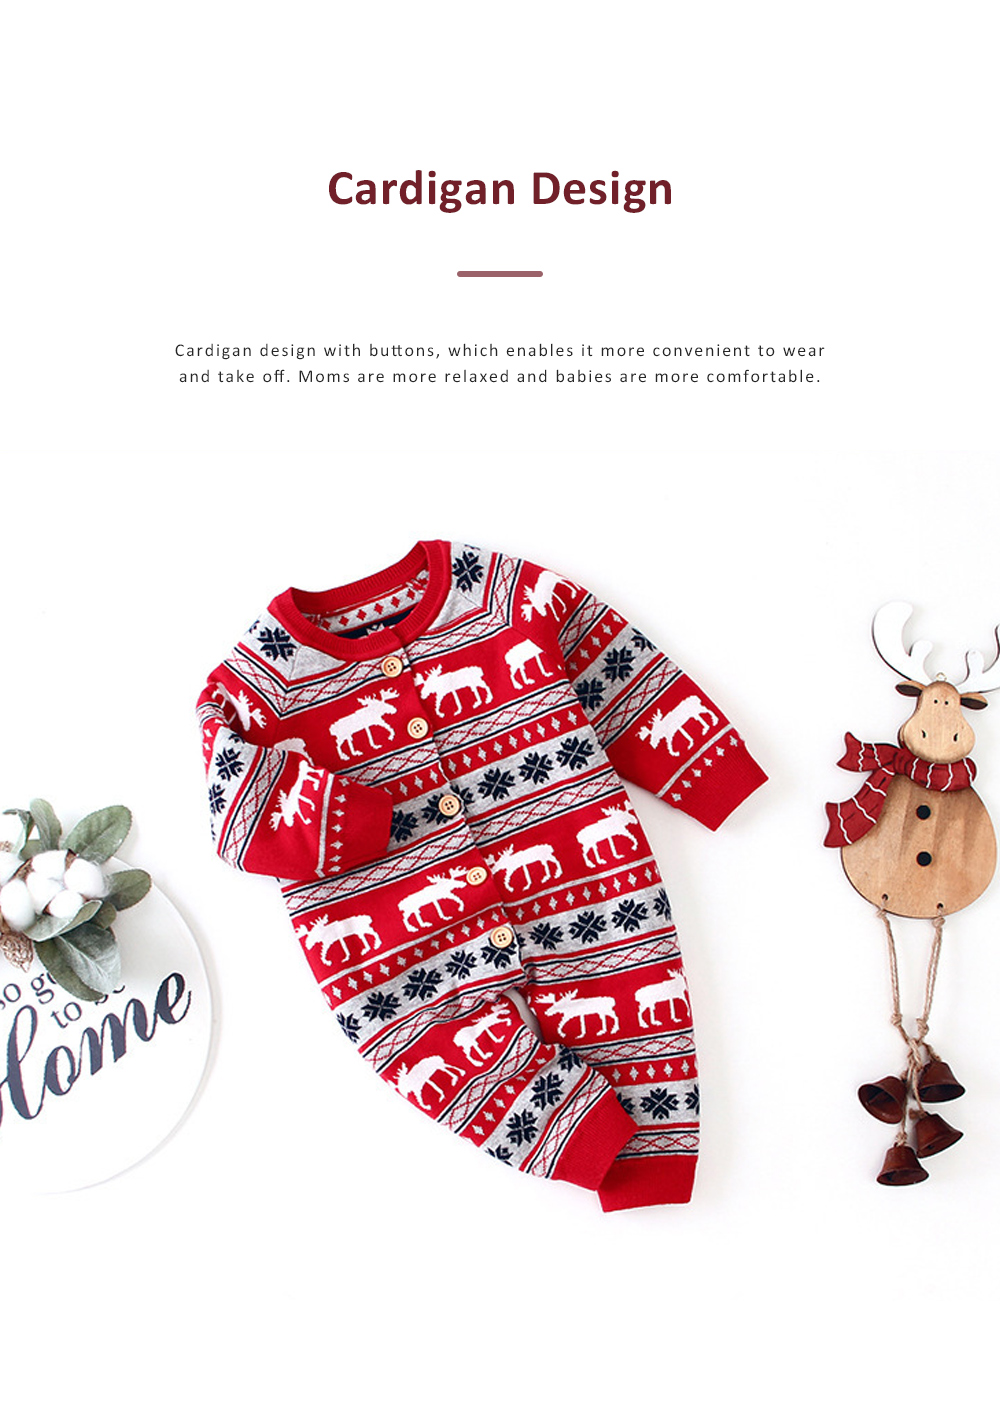 Christmas One-Piece Bodysuit for Baby Long Sleeve Cardigan Jumpsuits with Classic Round Collar and Ribbed cuffs for Boys and Girls 4